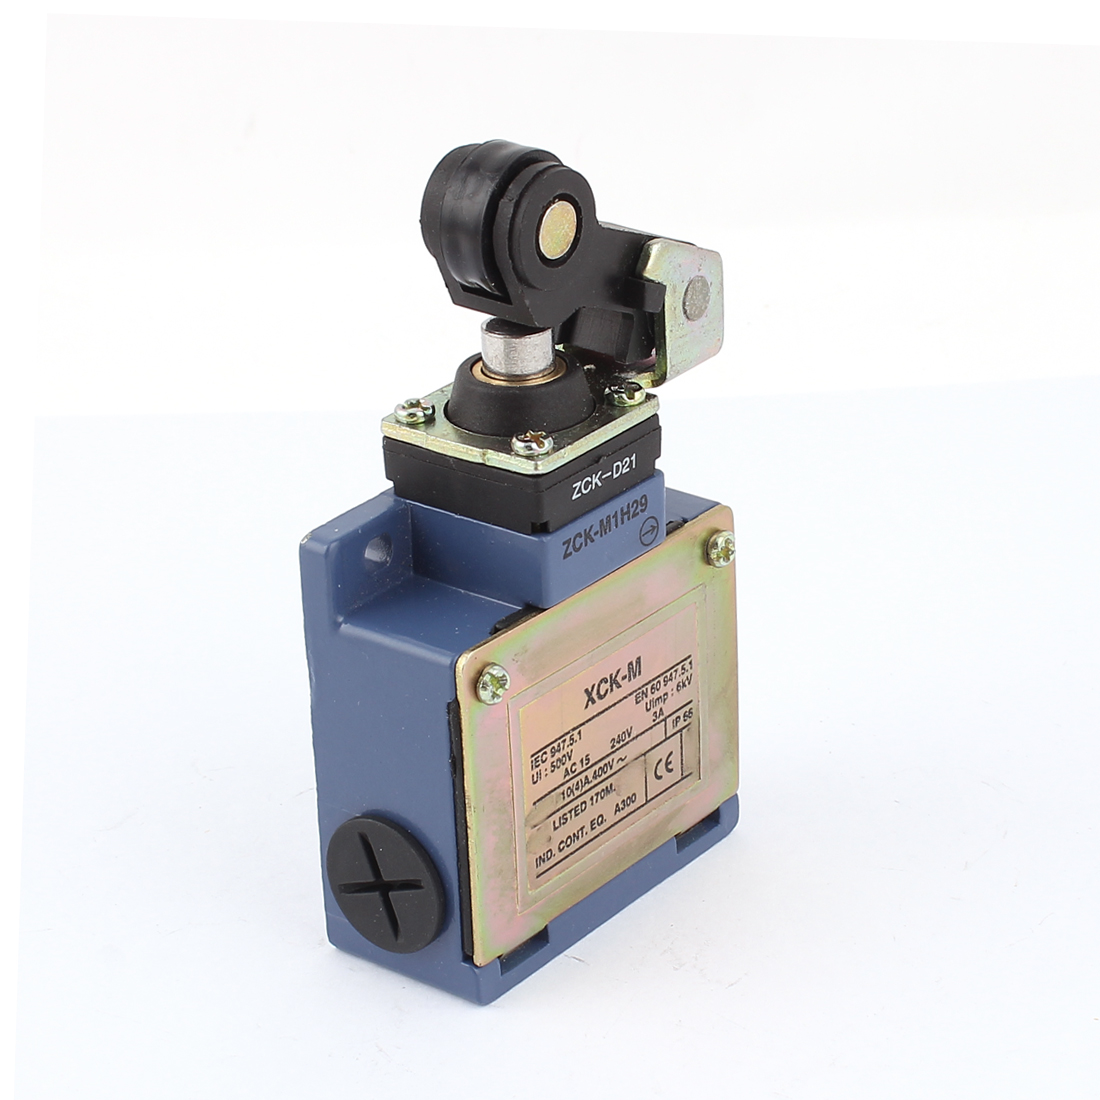 AC 240V 3A Waterproof Single Roller Rotary Lever Momentary Enclosed Limit Switch